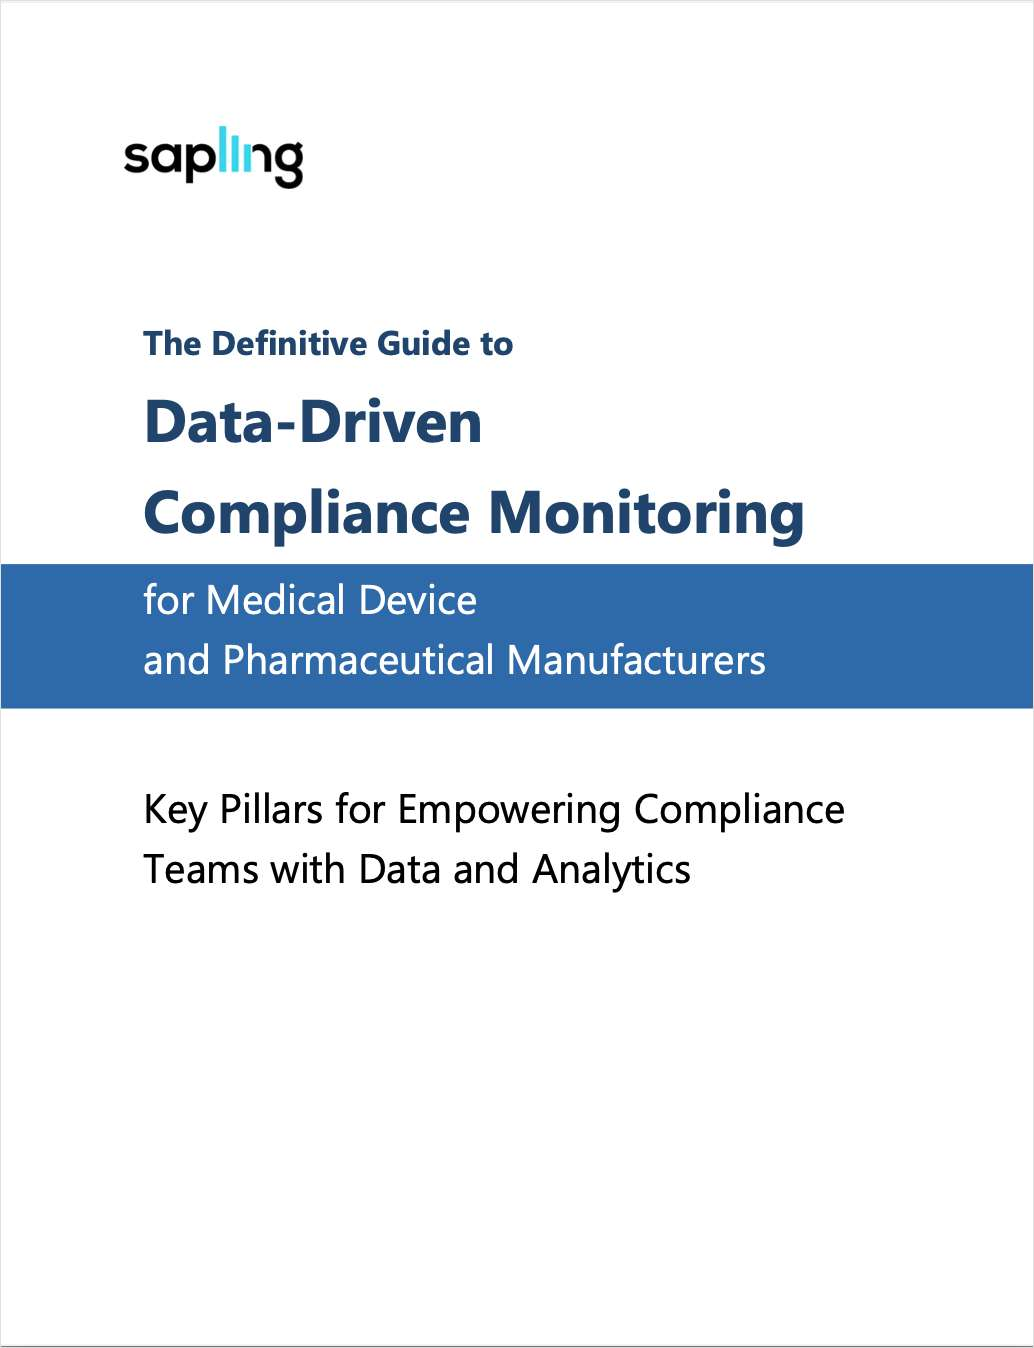 The Definitive Guide to Data-Driven Compliance for Medical Device and Pharmaceutical Manufacturers